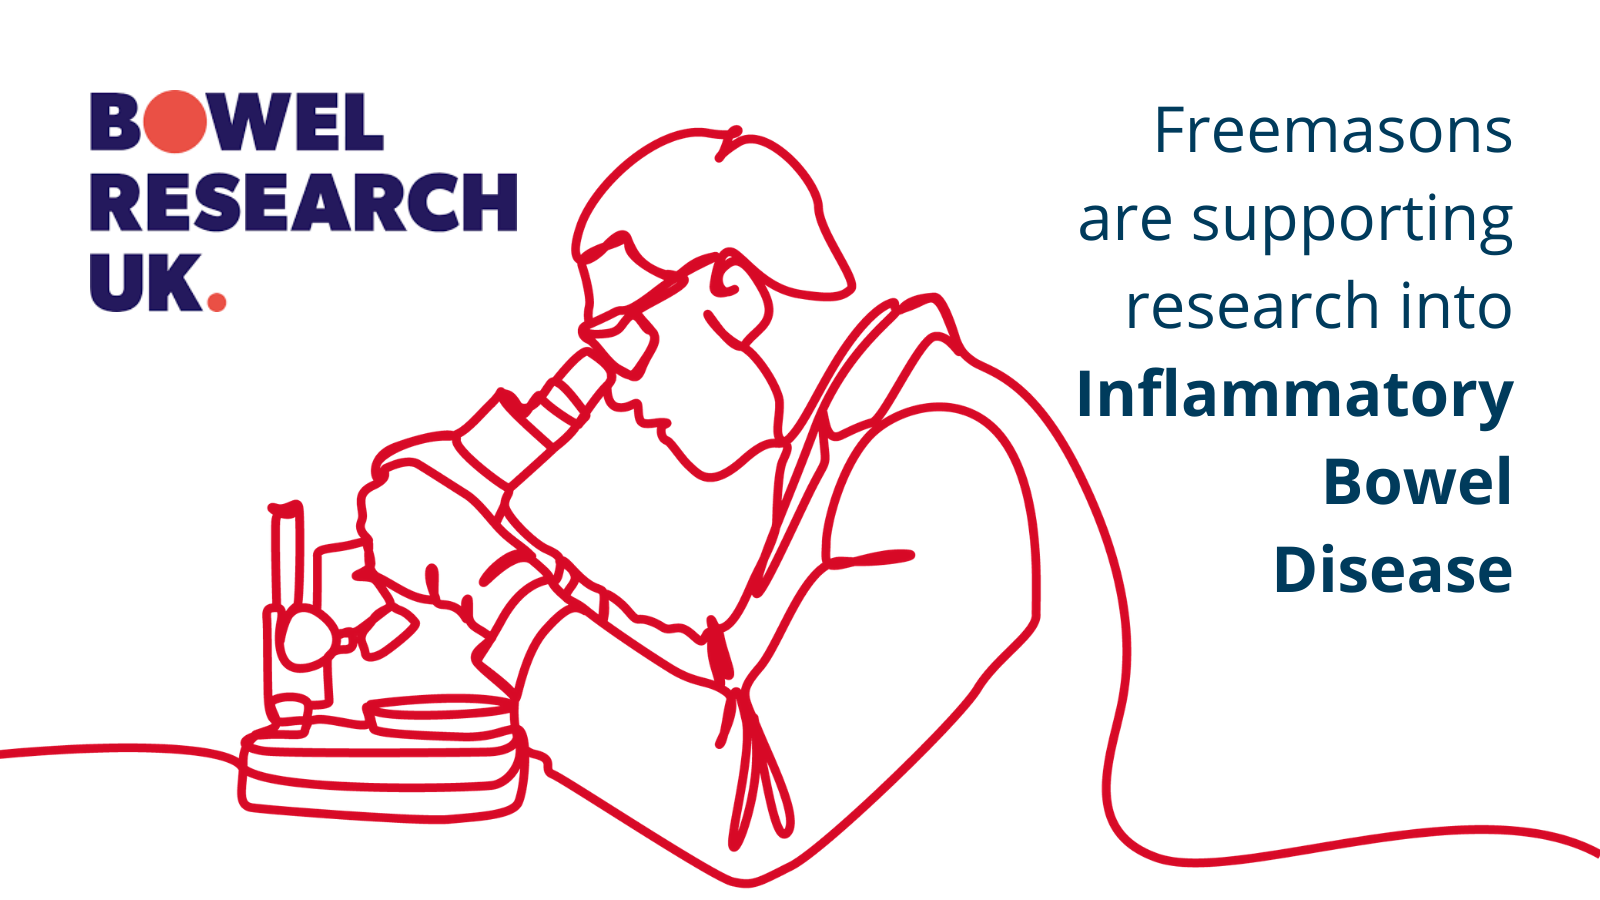 Support for Bowel Research UK